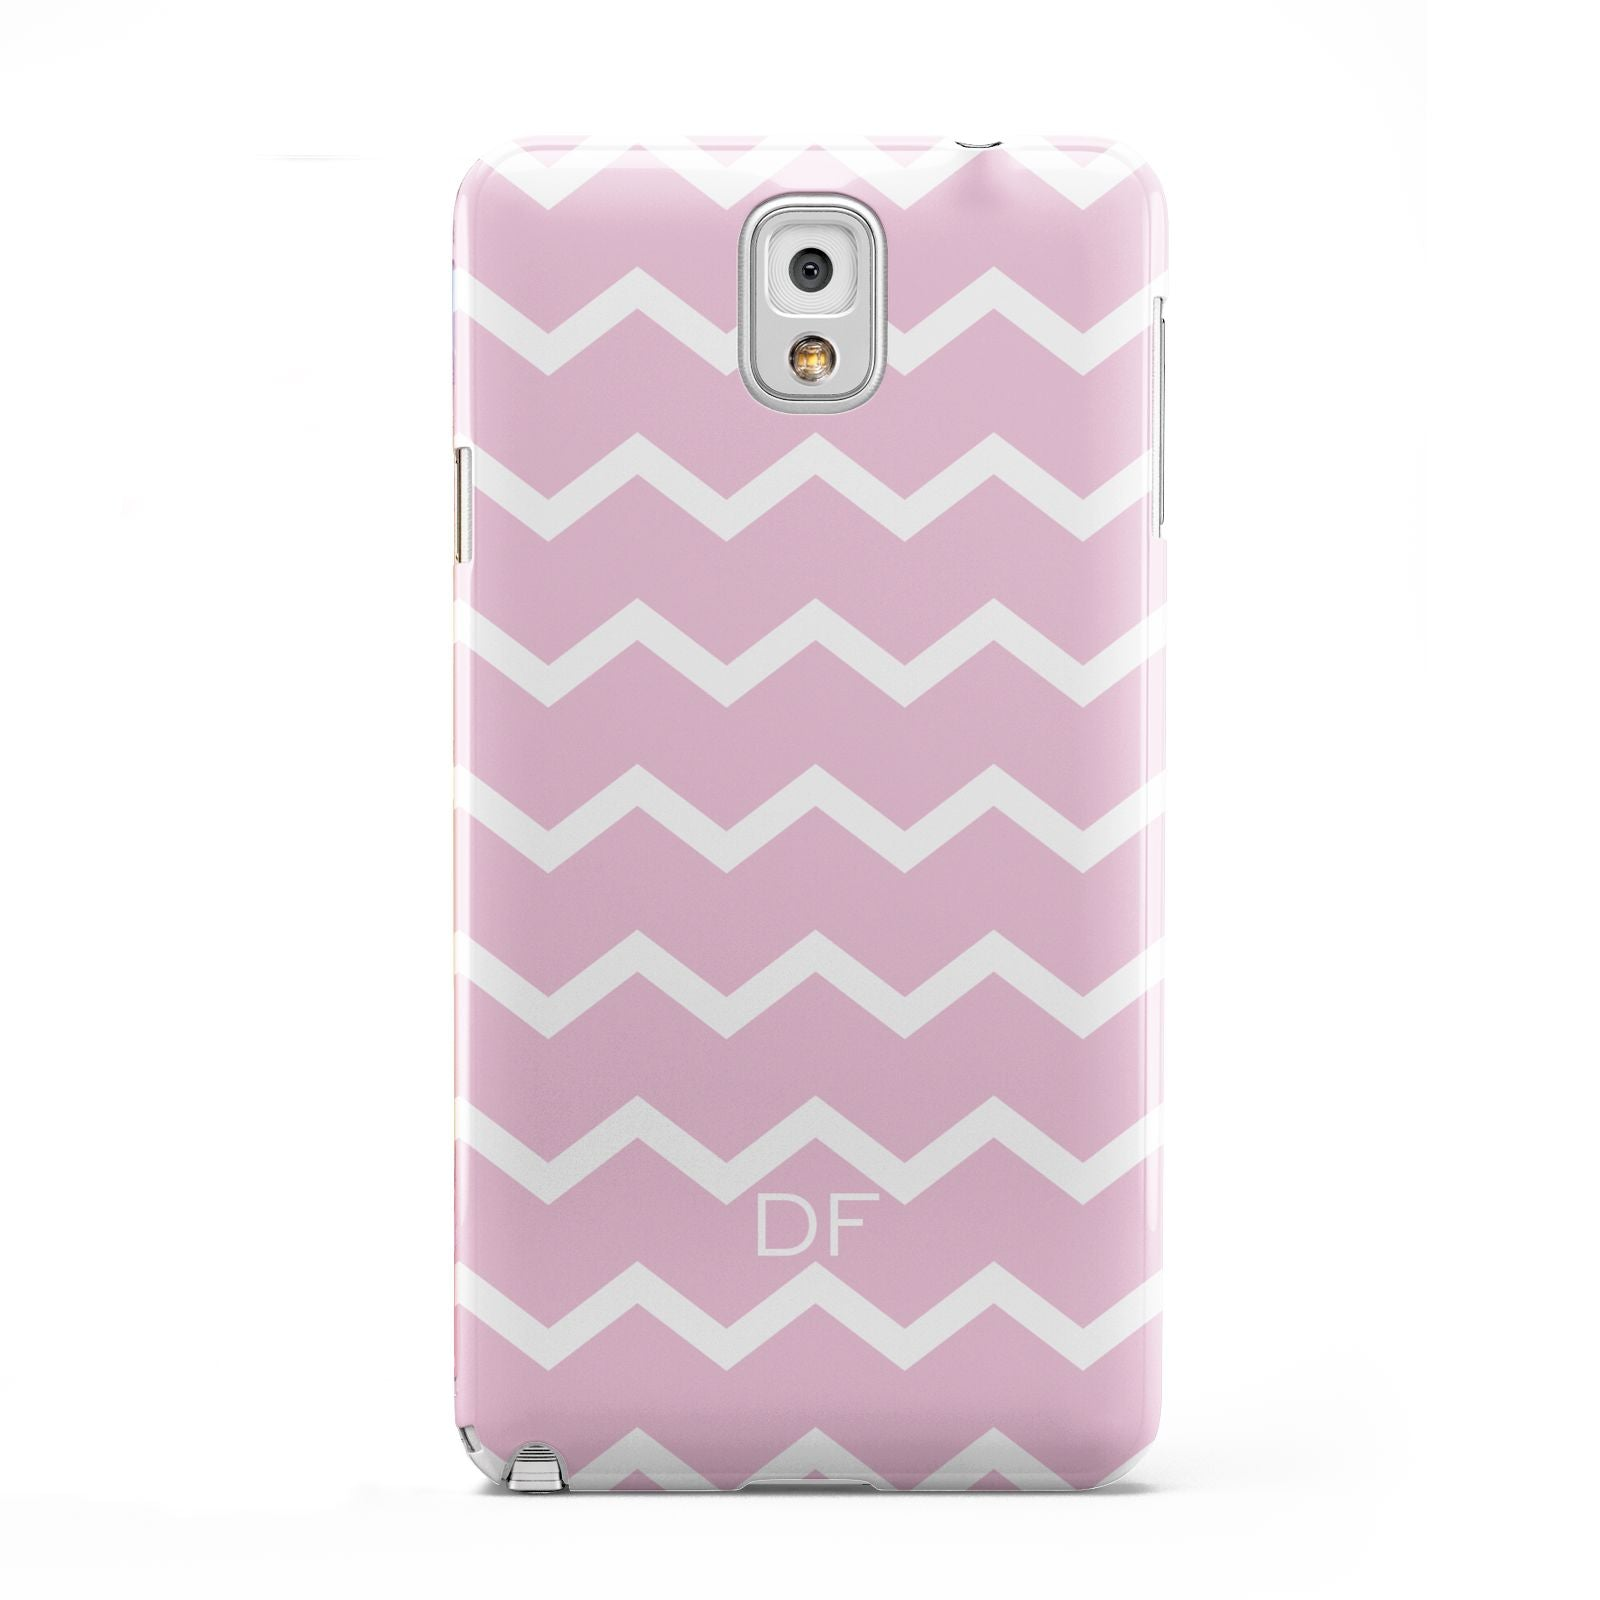 Personalised Chevron Pink Samsung Galaxy Note 3 Case